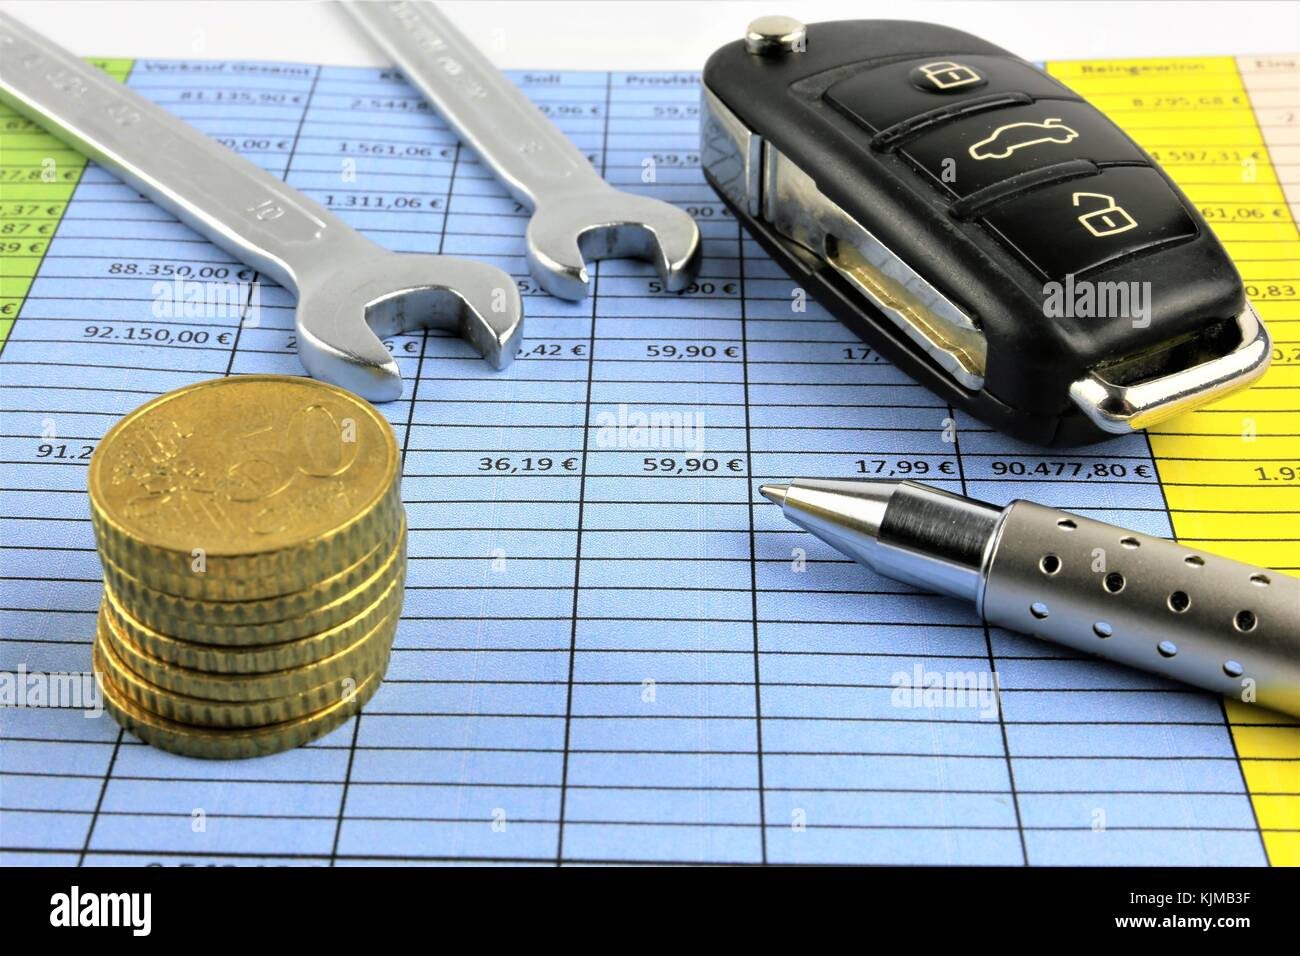 An concept Image of car maintenance costs - repair costs Stock Photo